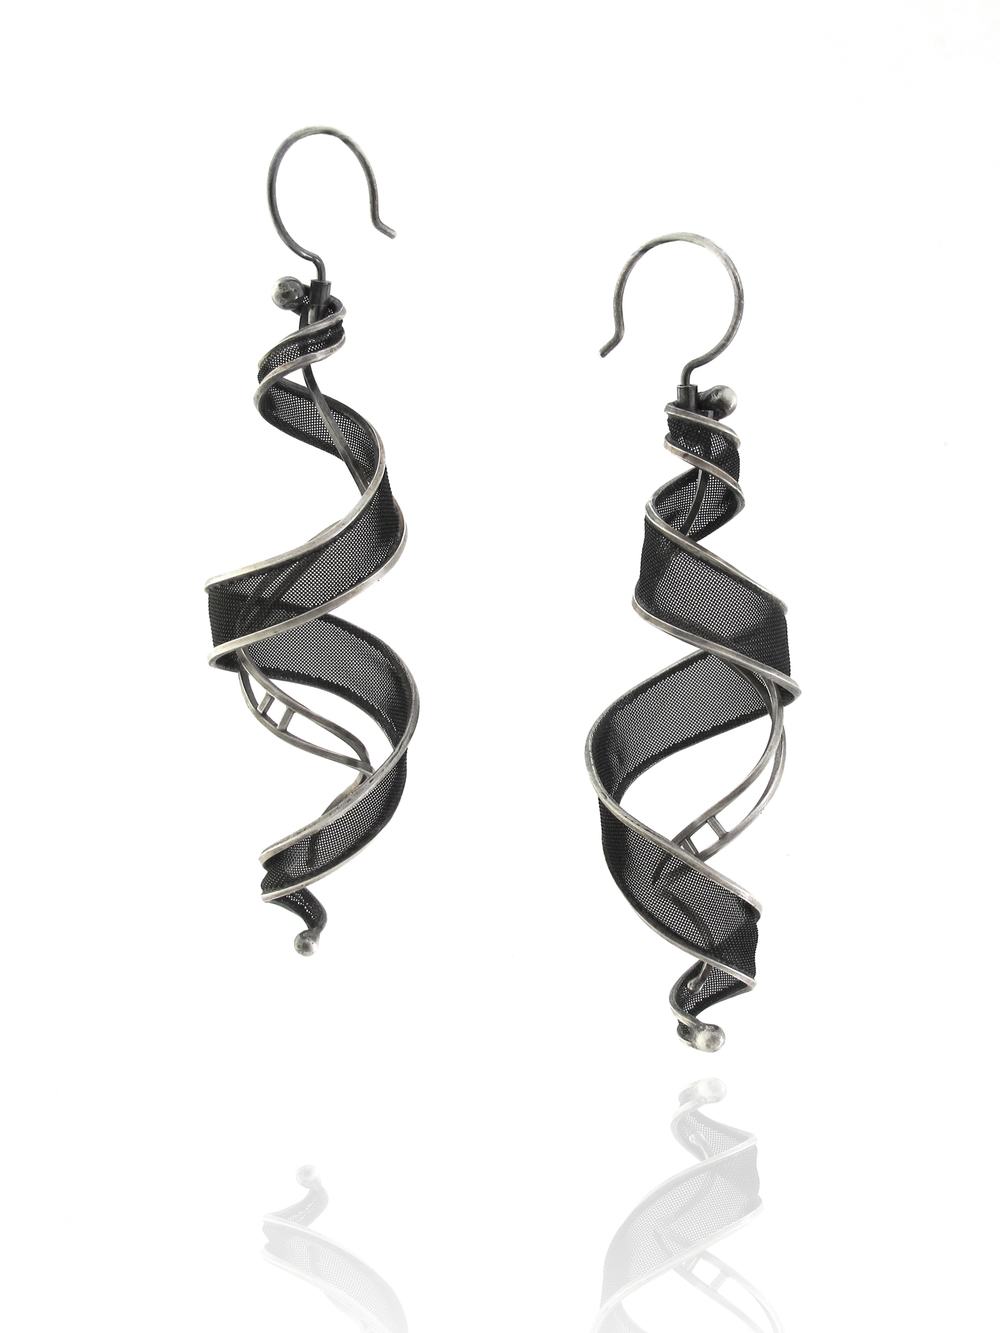 E9 Sellers, Caitie, Large Helix Earrings, sterling silver, copper mesh, $350.jpg